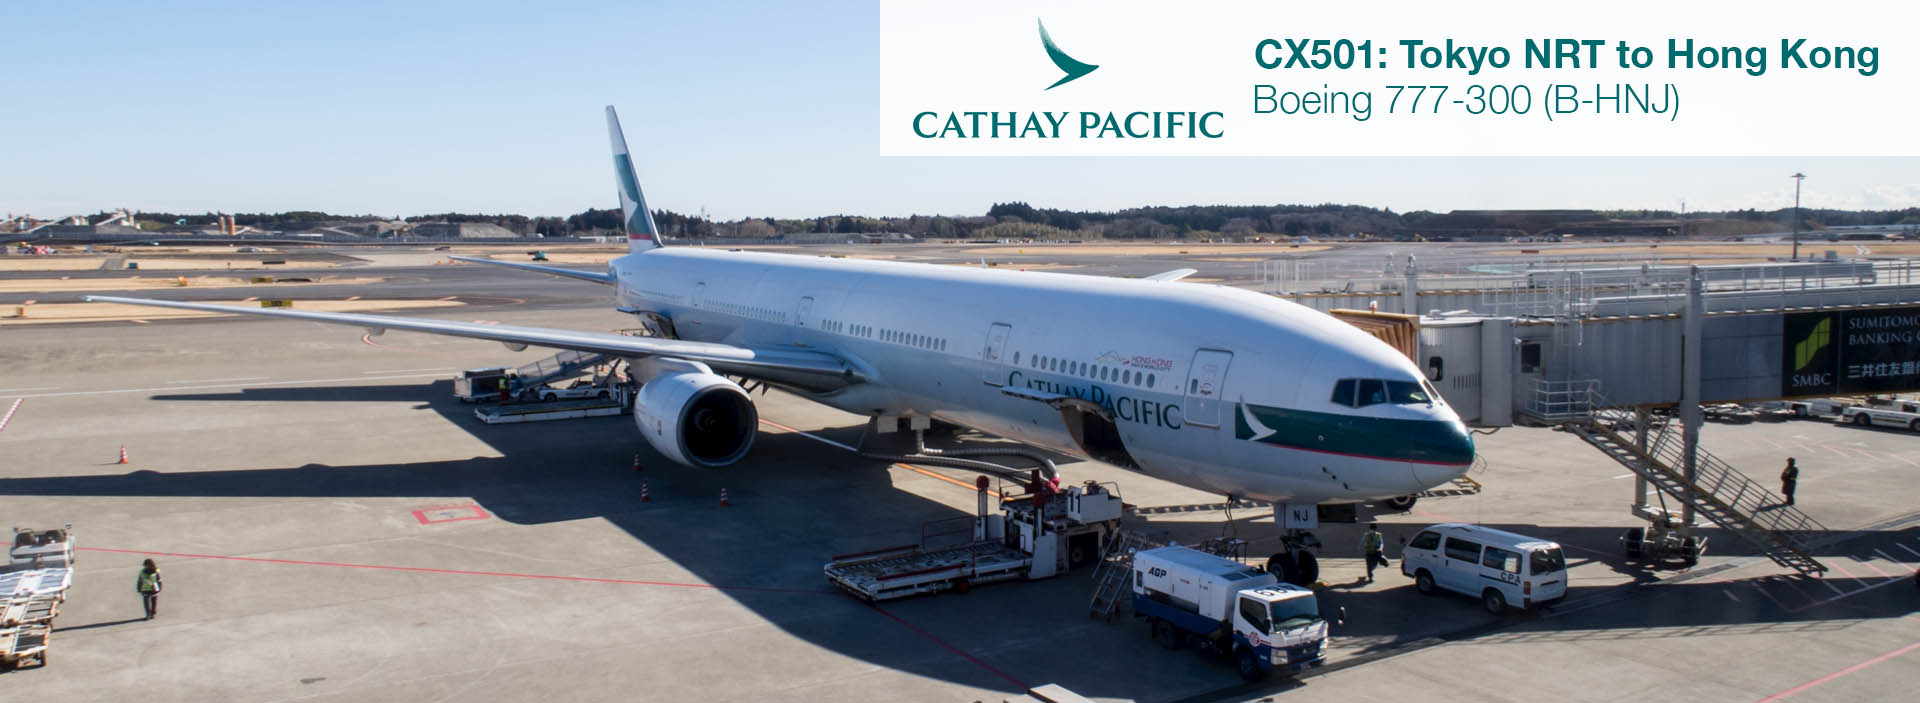 Flight Review: Cathay Pacific 777-300 Economy Class from Tokyo Narita to Hong Kong